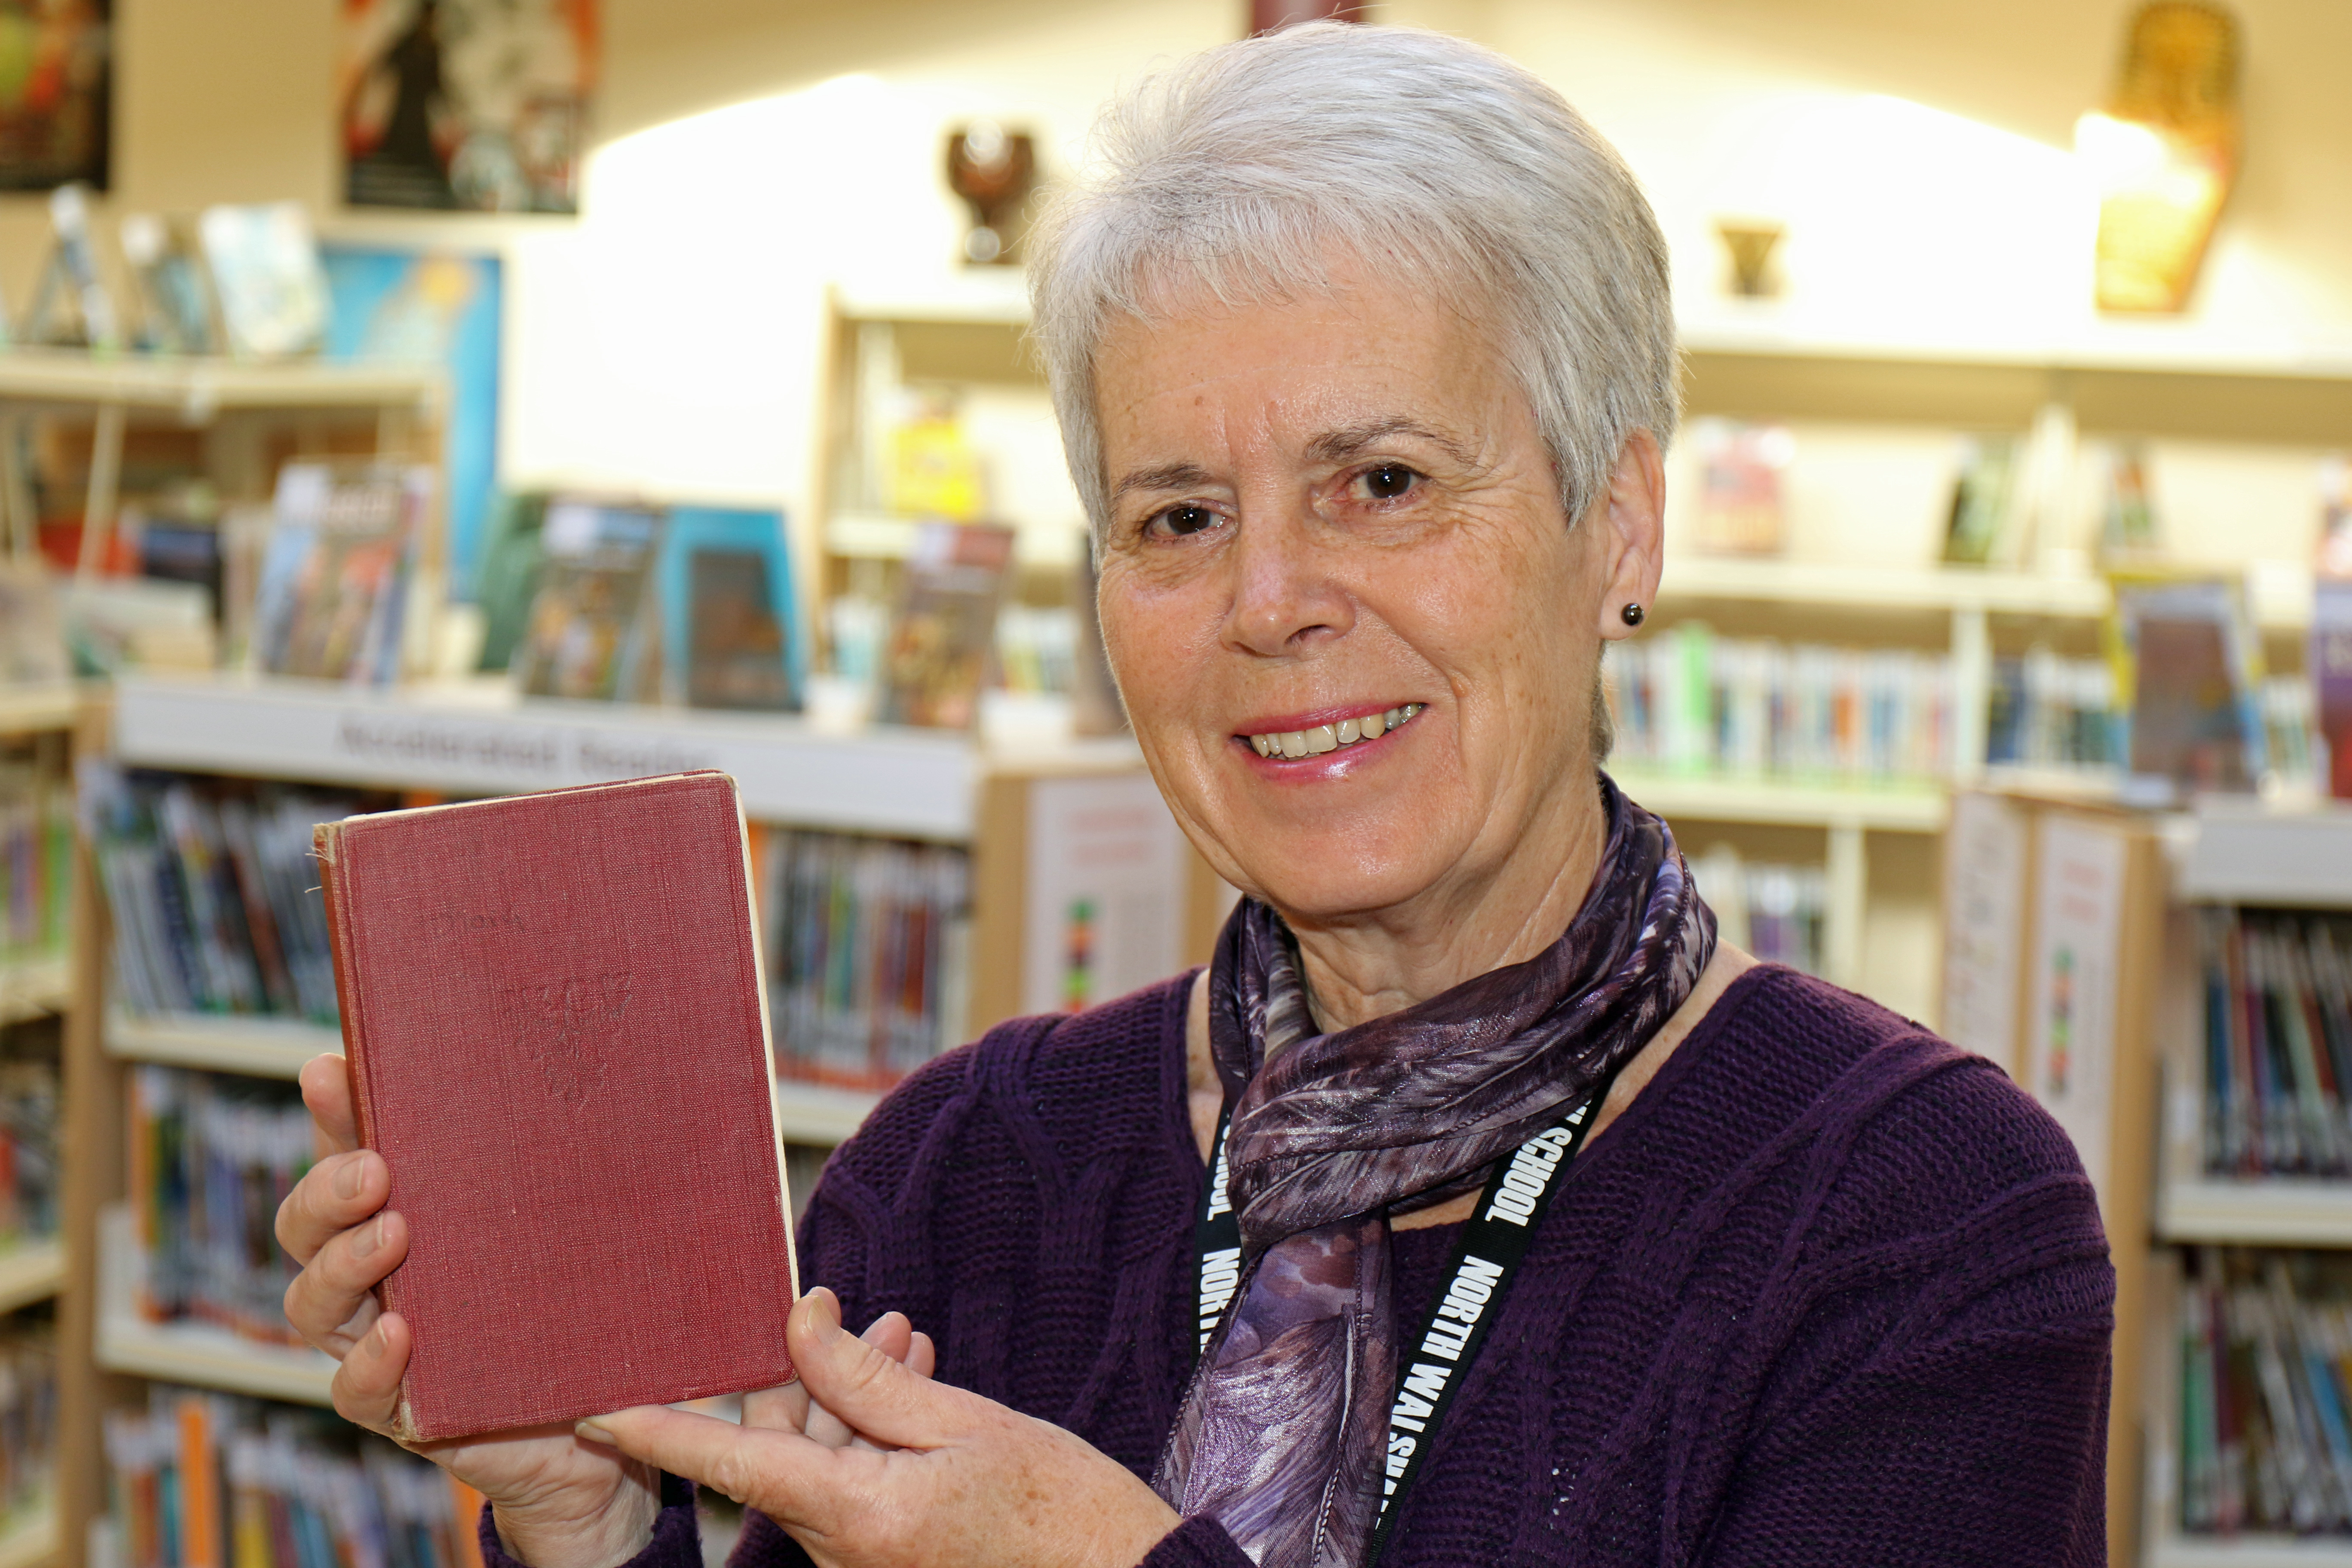 NWHS librarian Liz Sawyer with the overdue book from 1953 which has been-returned. PICTURES: ANDY NEWMAN